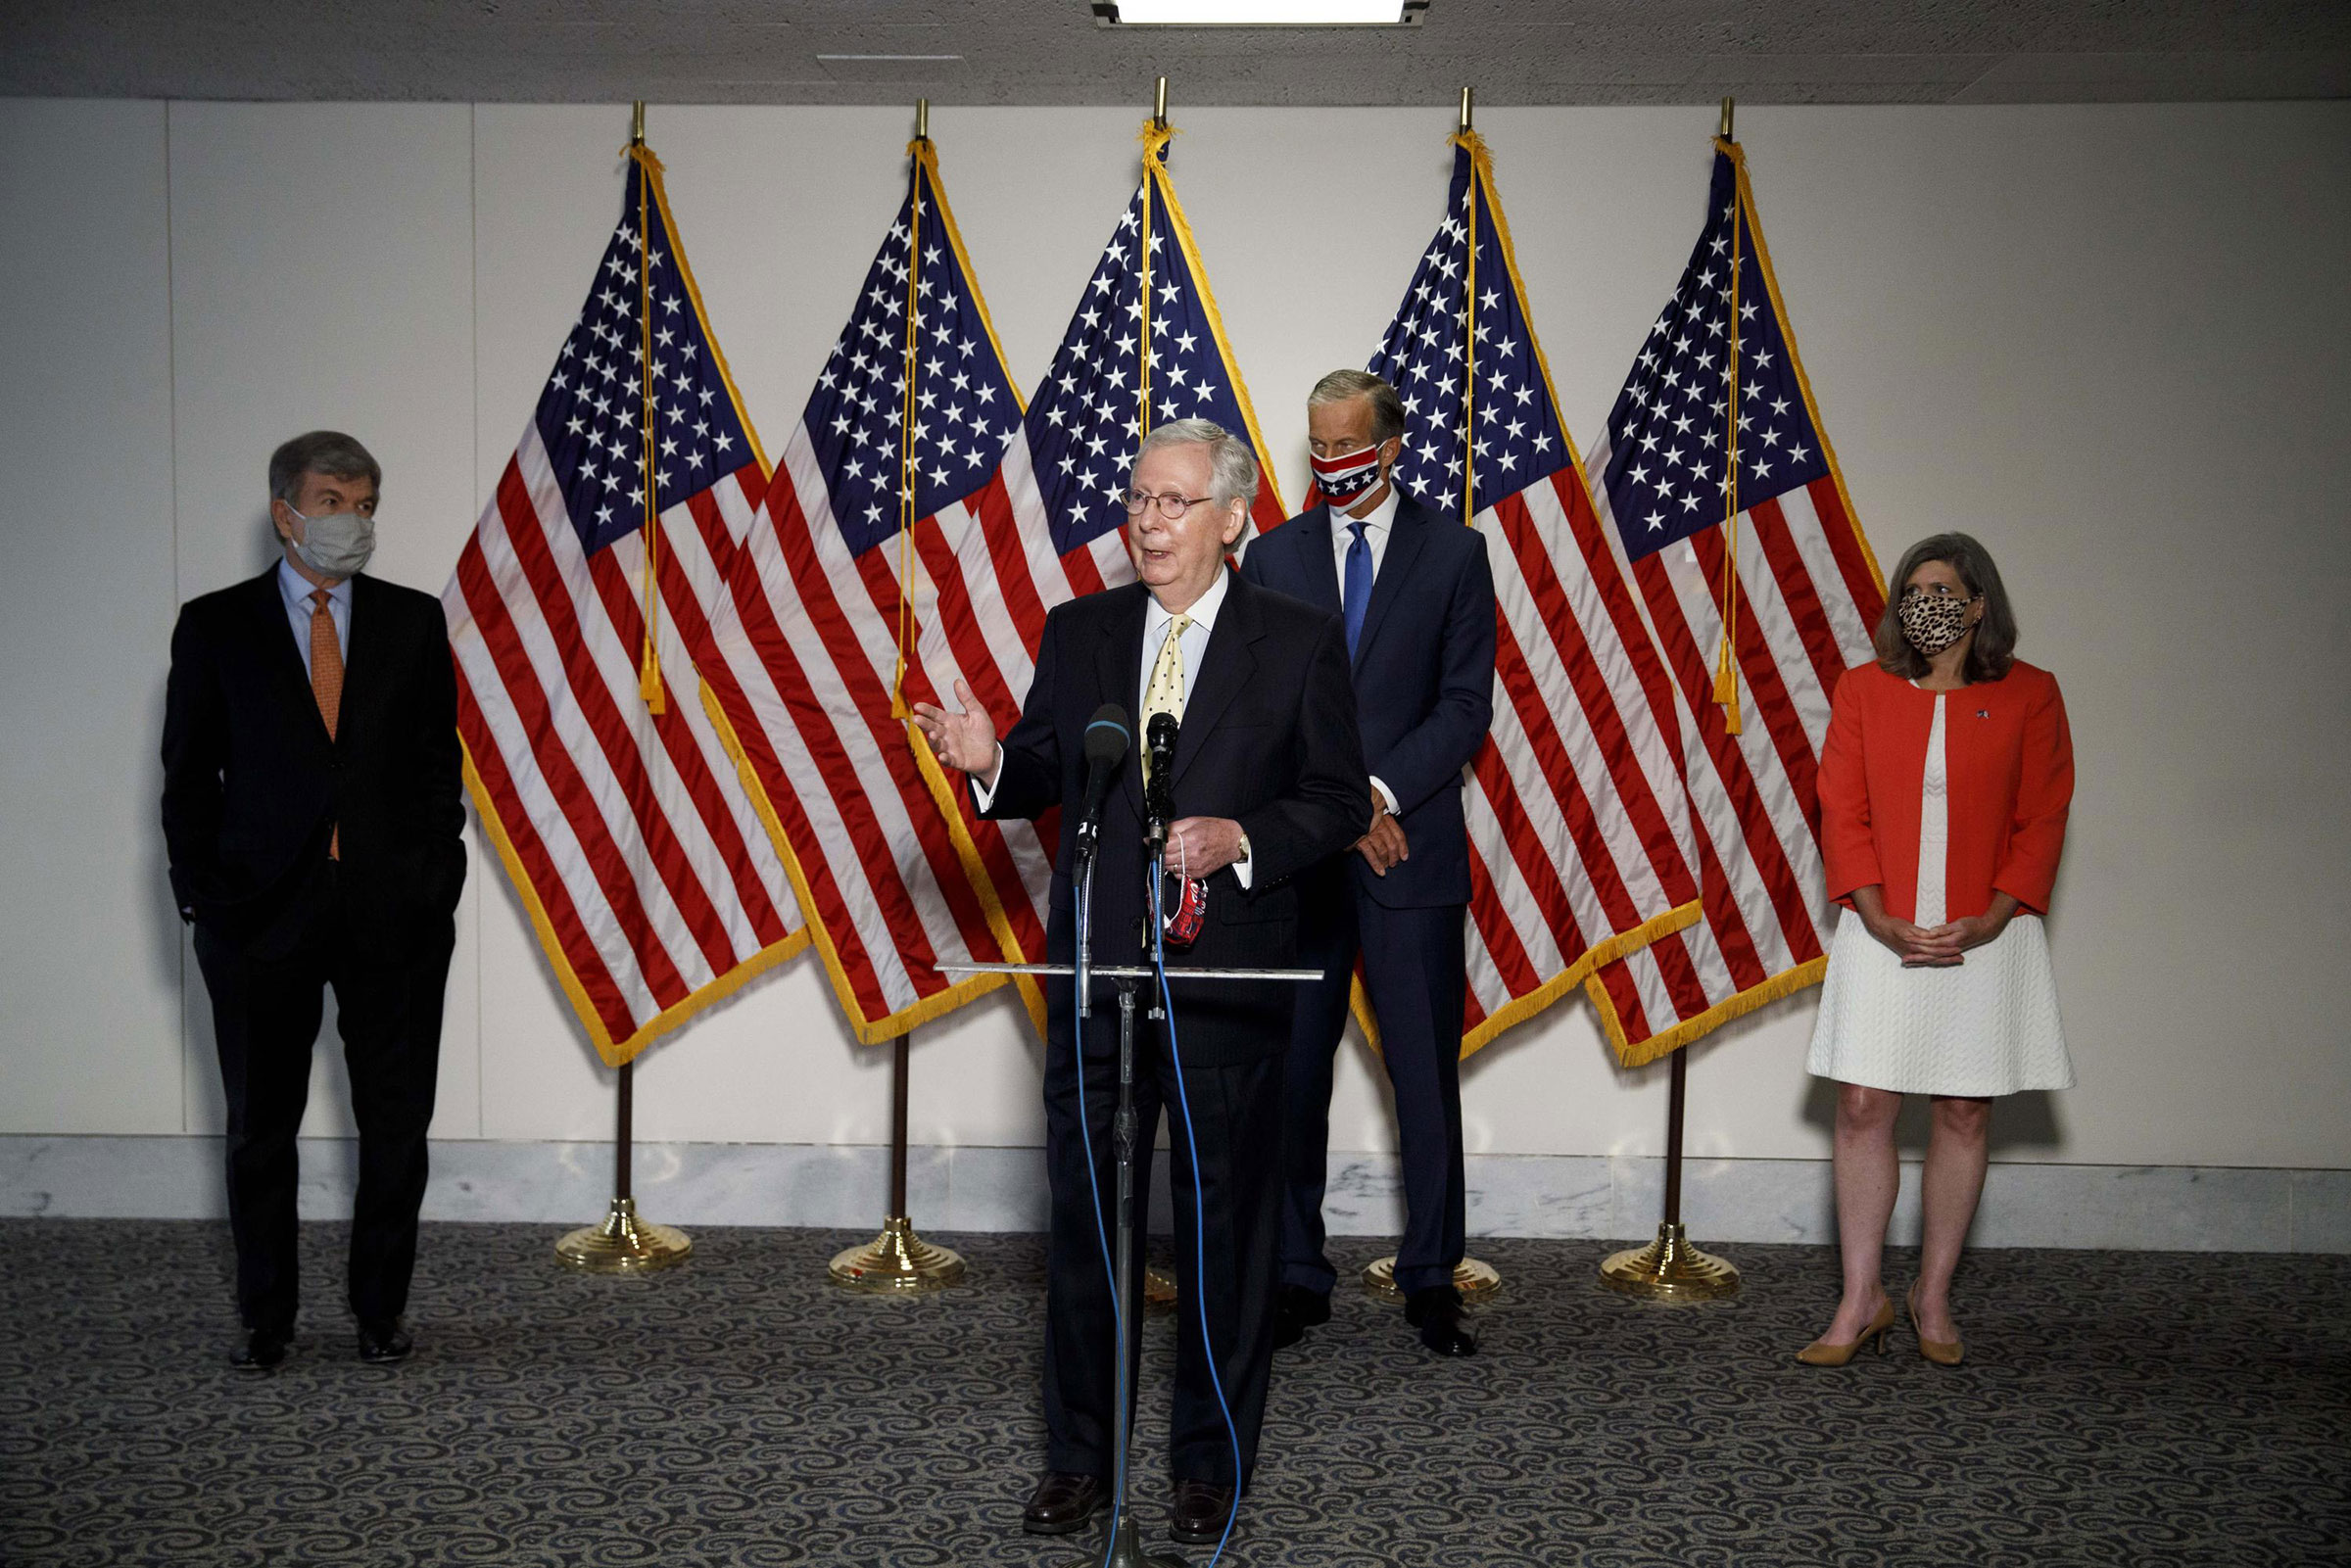 Senate Majority Leader Mitch McConnell Front speaks during a press conference on Capitol Hill in Washington, D.C., on July 21, 2020.